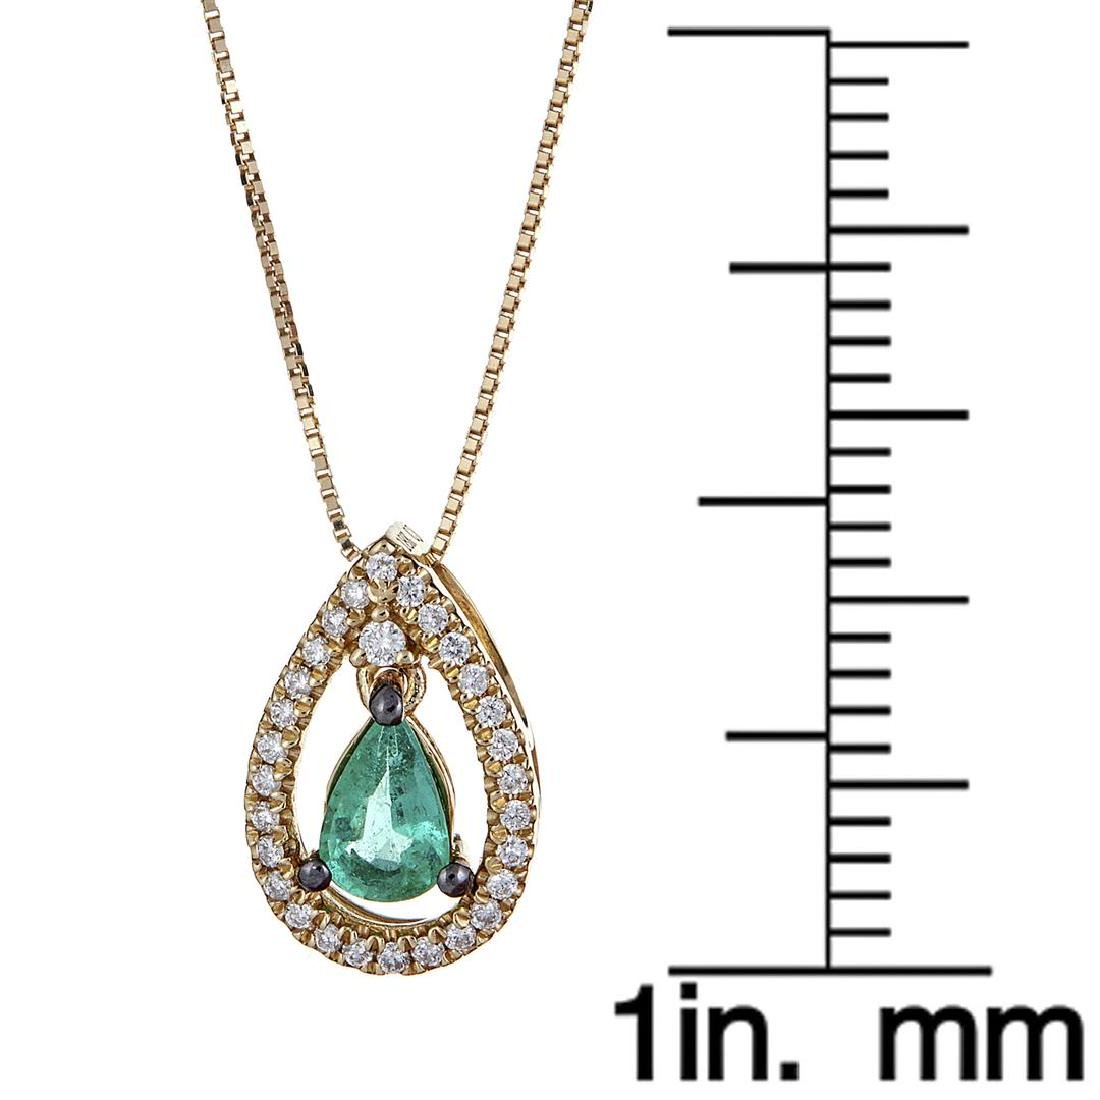 0.34 ctw Emerald and Diamond Pendant - 18KT Yellow Gold